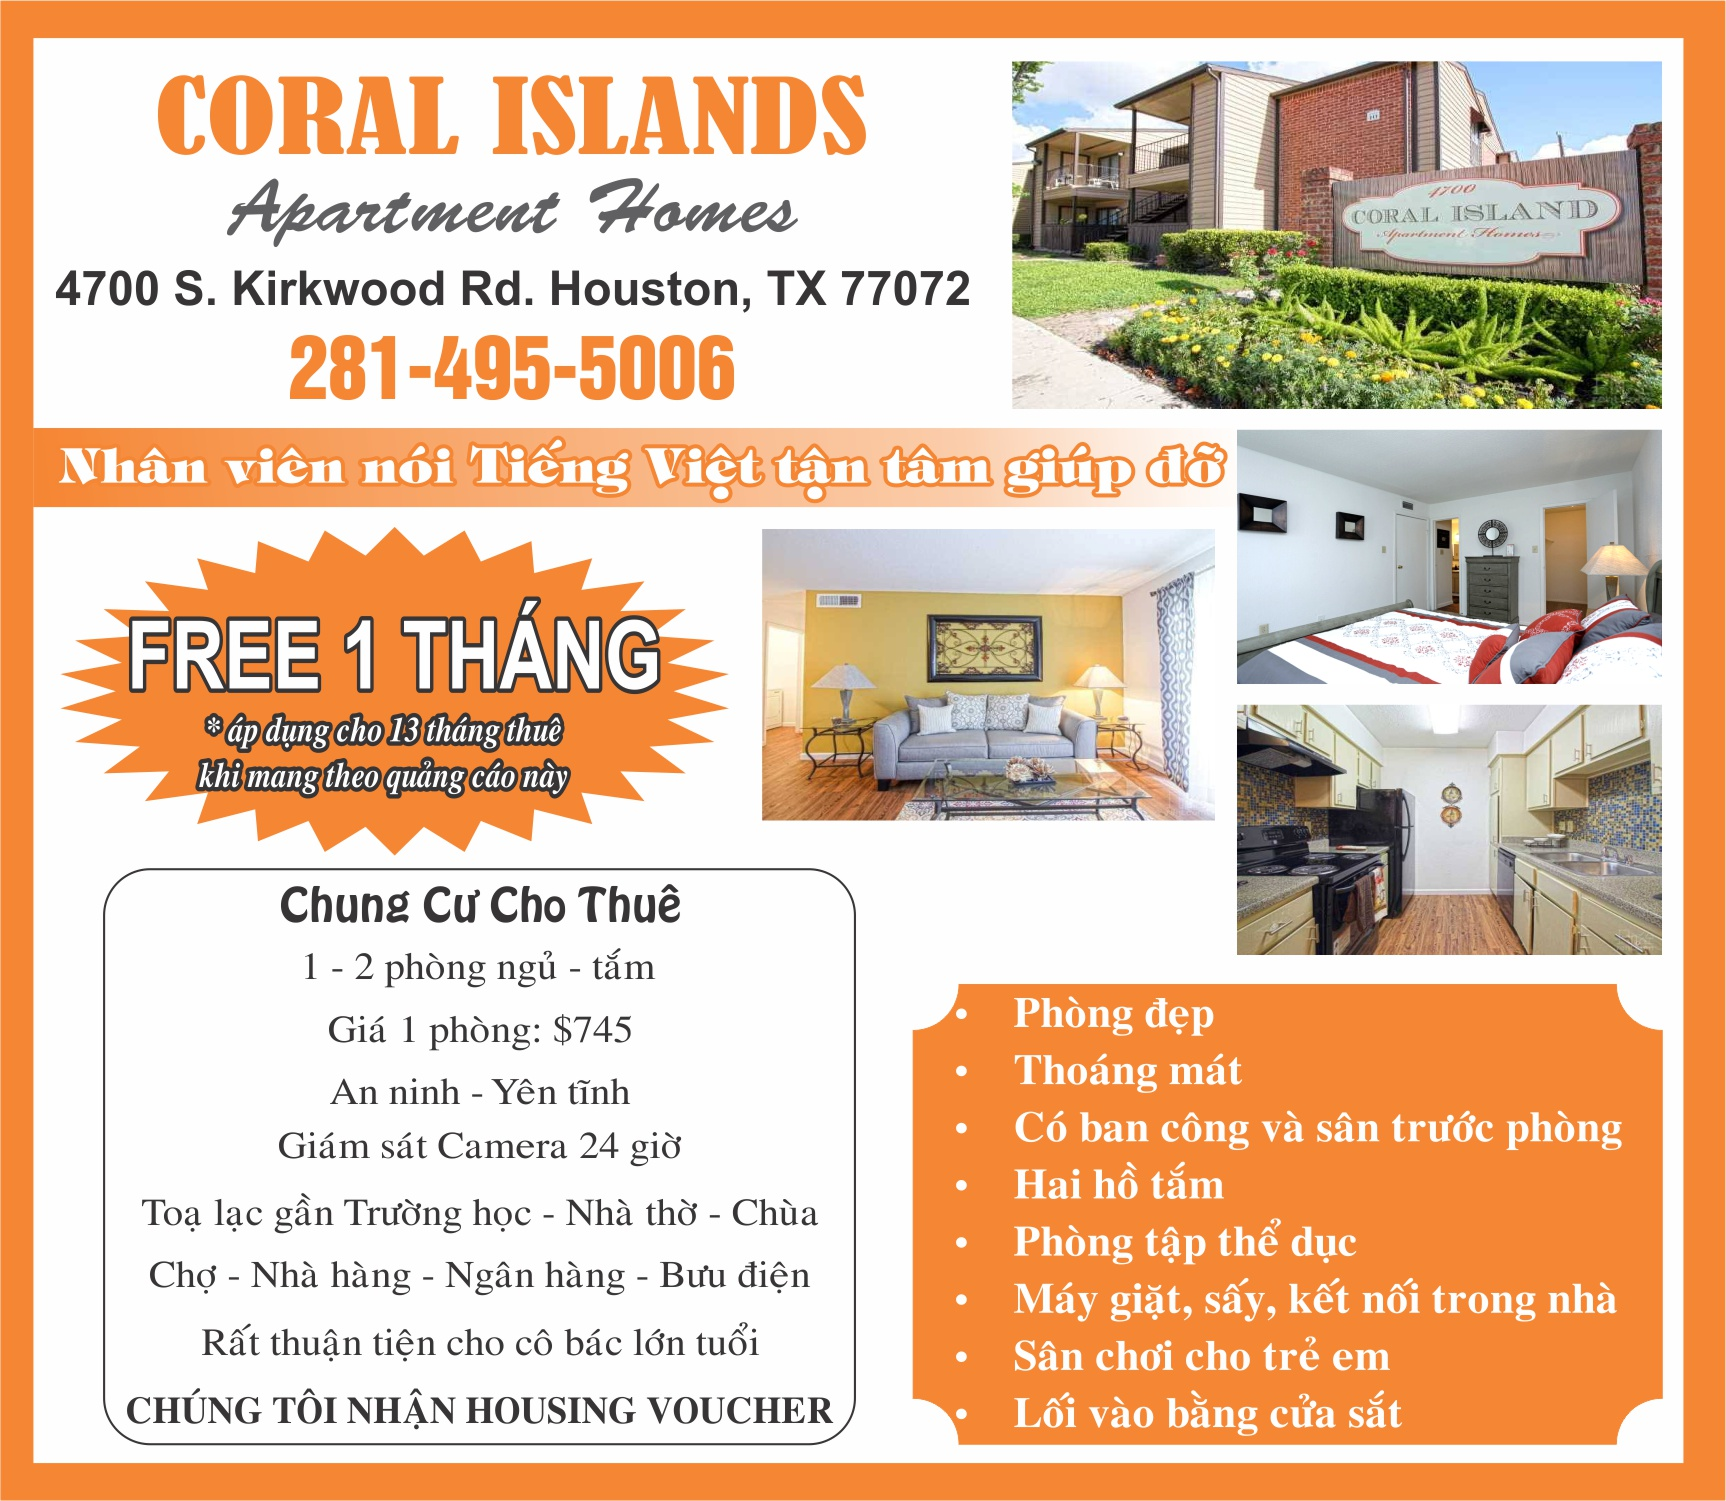 Coral Islands Apartment Homes